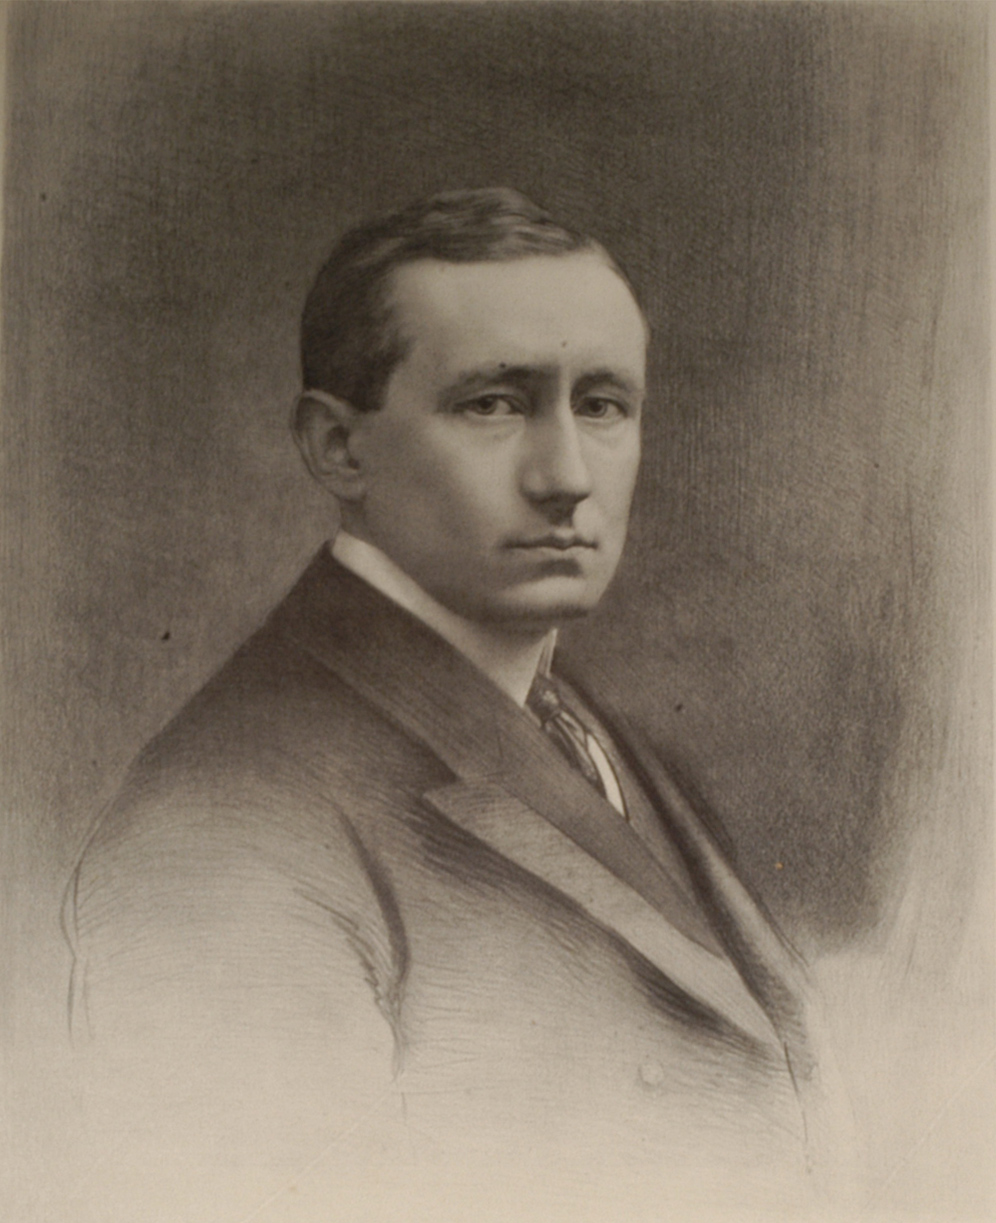 preview image for Proof Print (?Lithograph) of a Portrait of Guglielmo Marconi, by G. B. Black, London, c. 1914